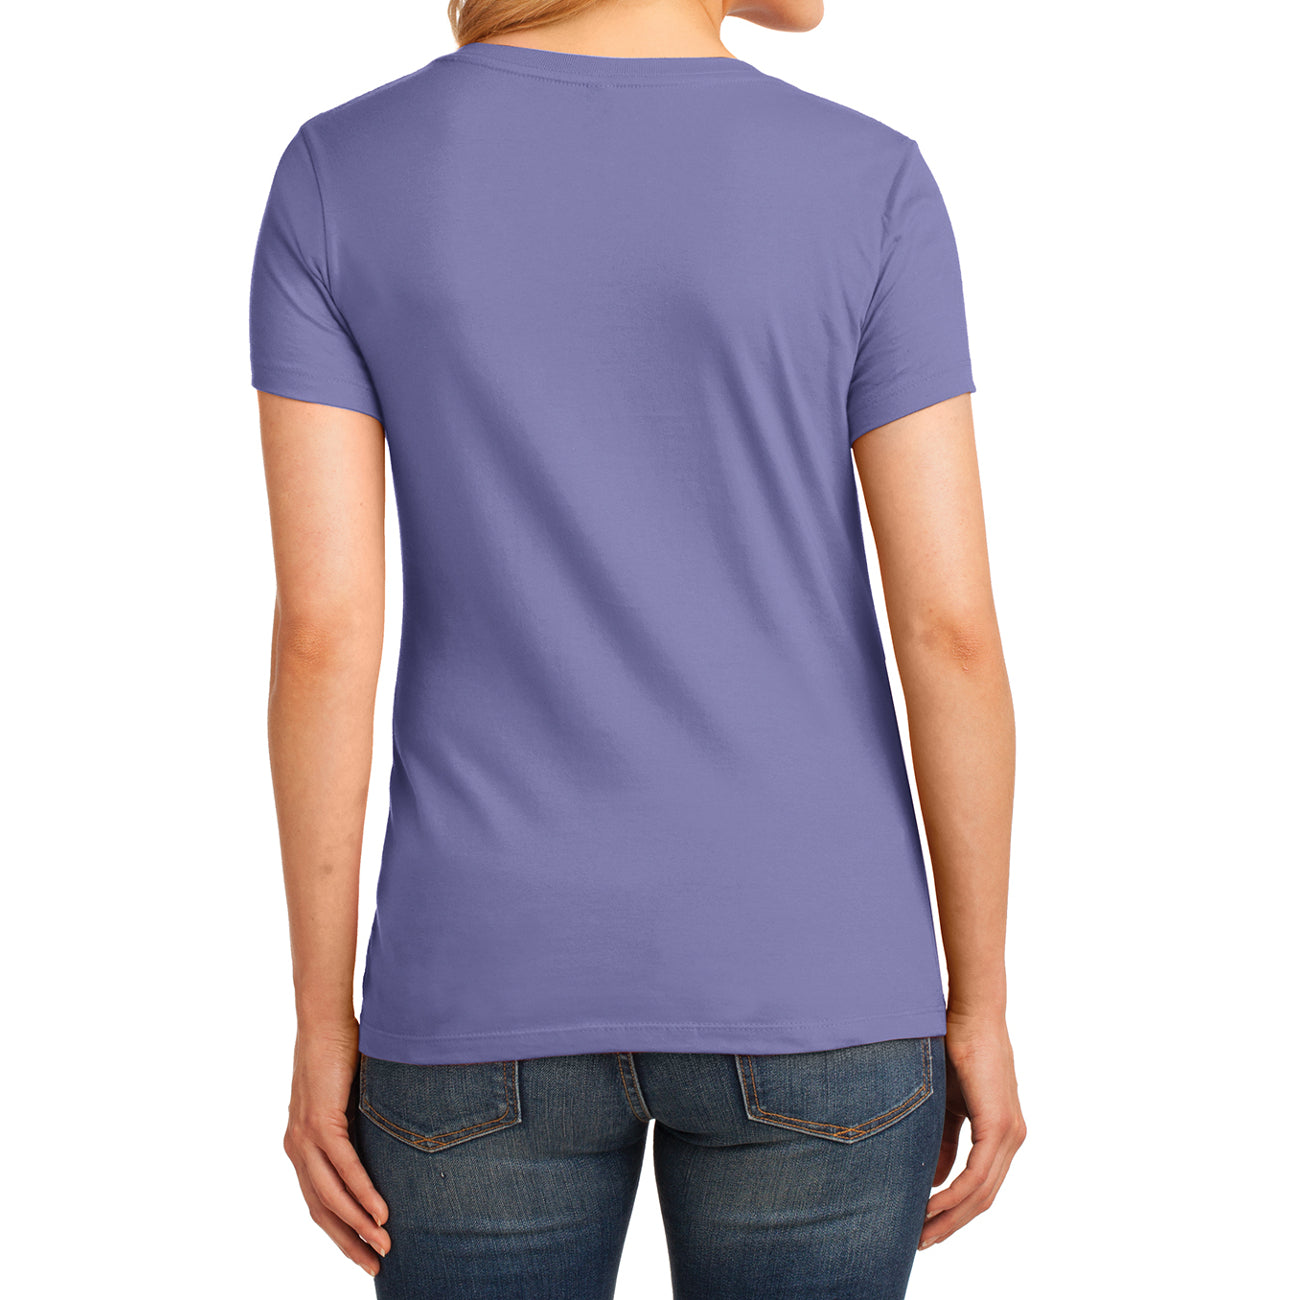 Women's Core Cotton V-Neck Tee - Violet - Back